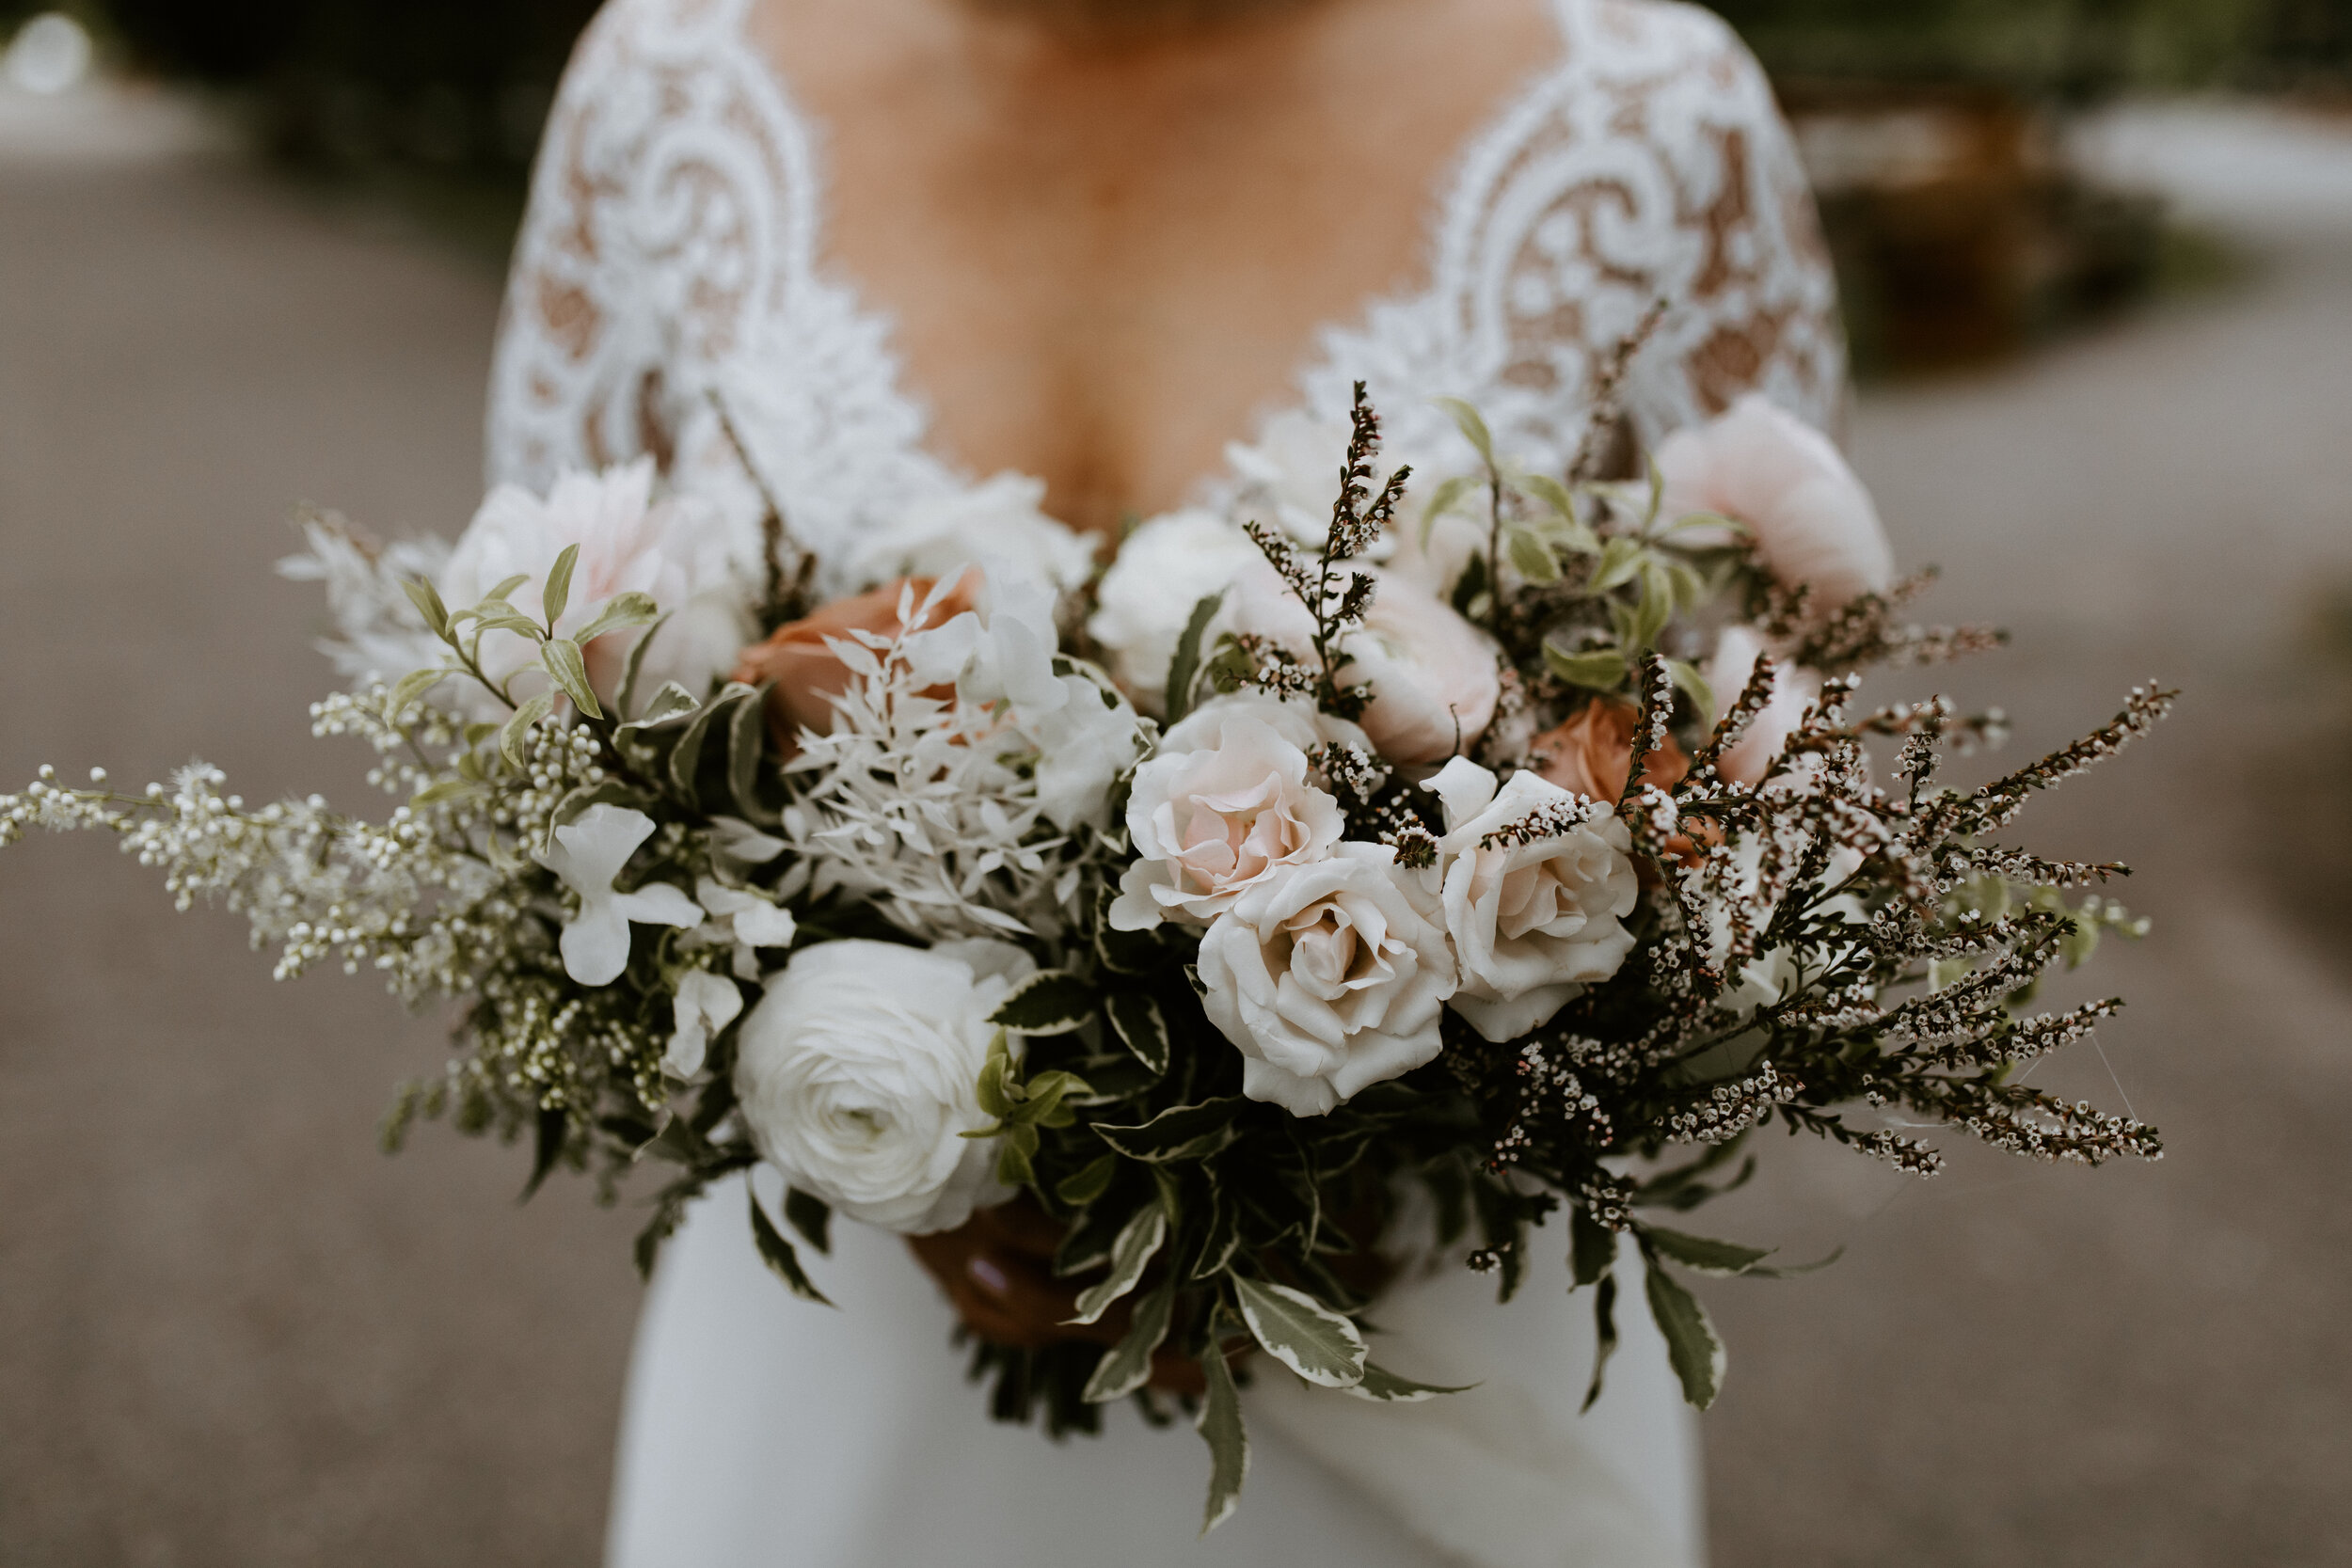 Bride and Groom - Wedding Style Inspiration - Bridal Bouquet